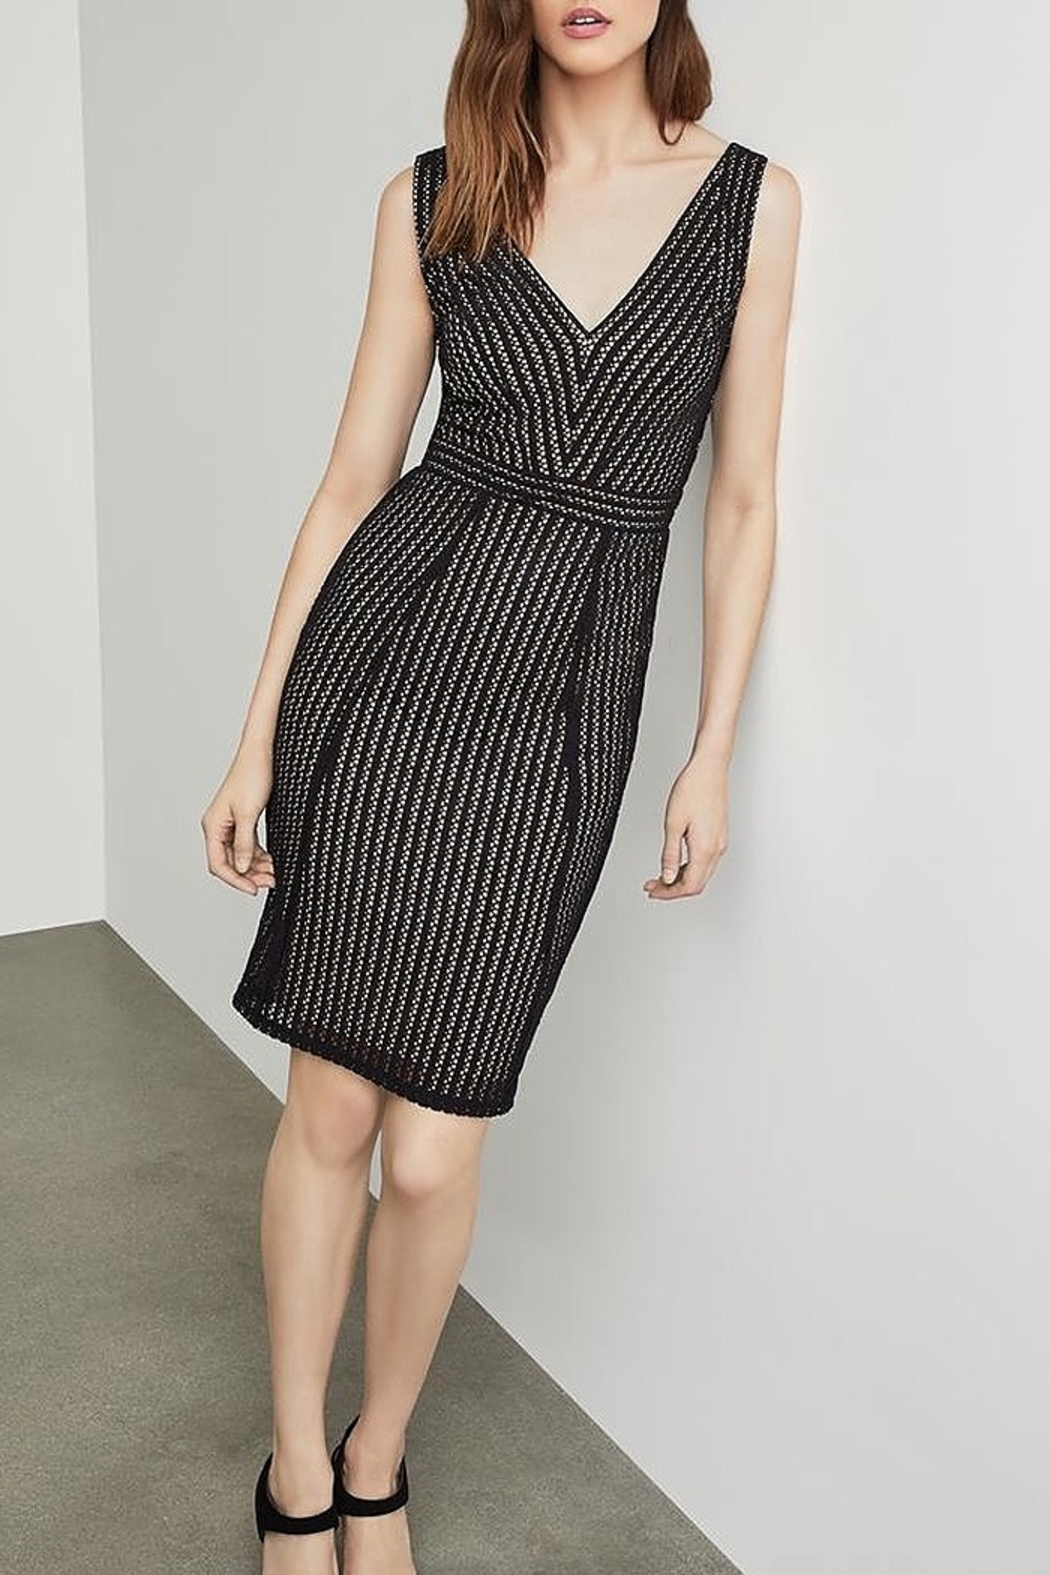 BCBG MAXAZRIA Striped Lace Sheath Dress - Front Cropped Image